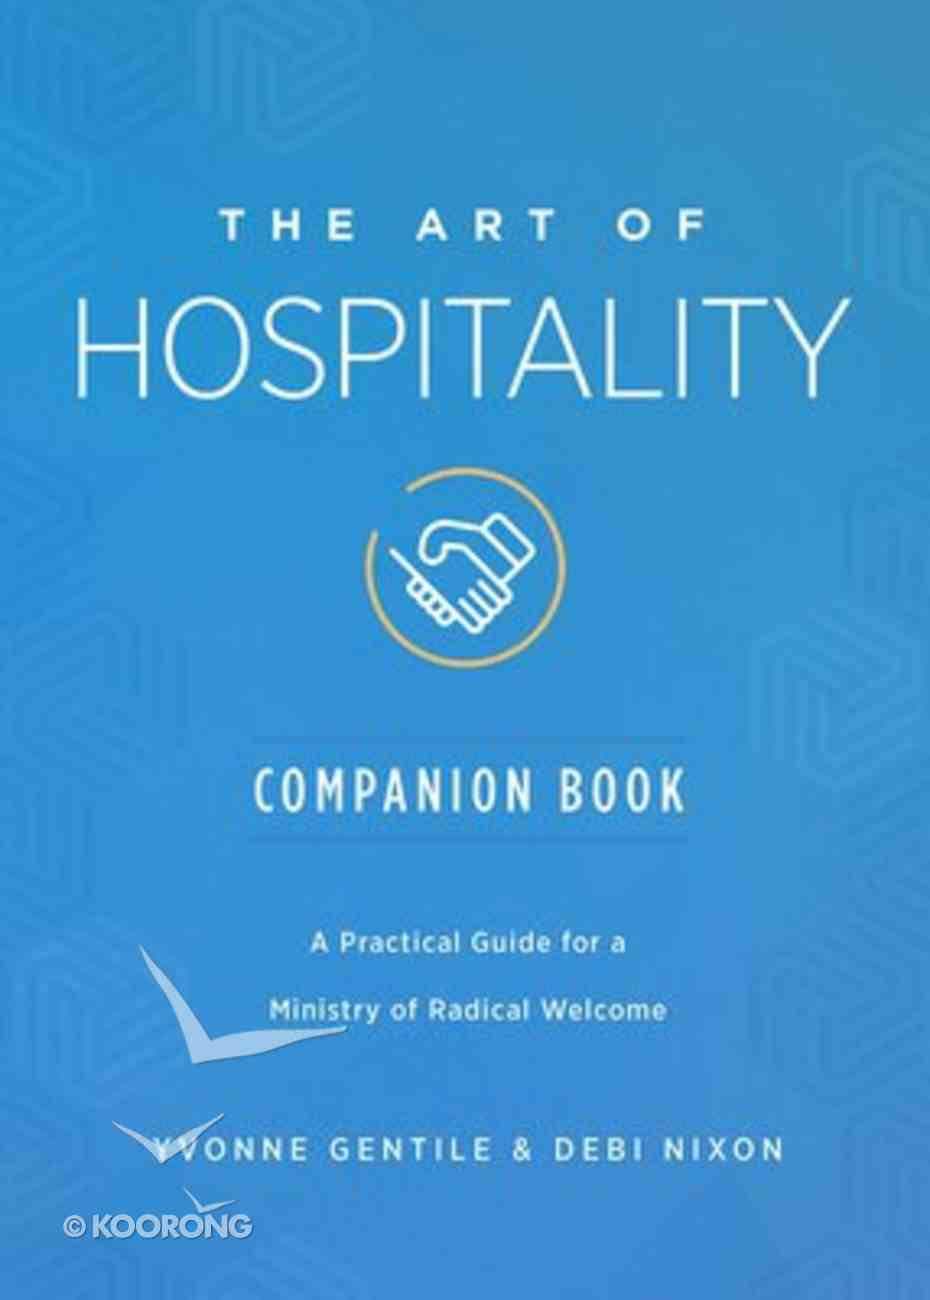 The Art of Hospitality: A Practical Guide For a Ministry of Radical Welcome (Companion Book) Paperback